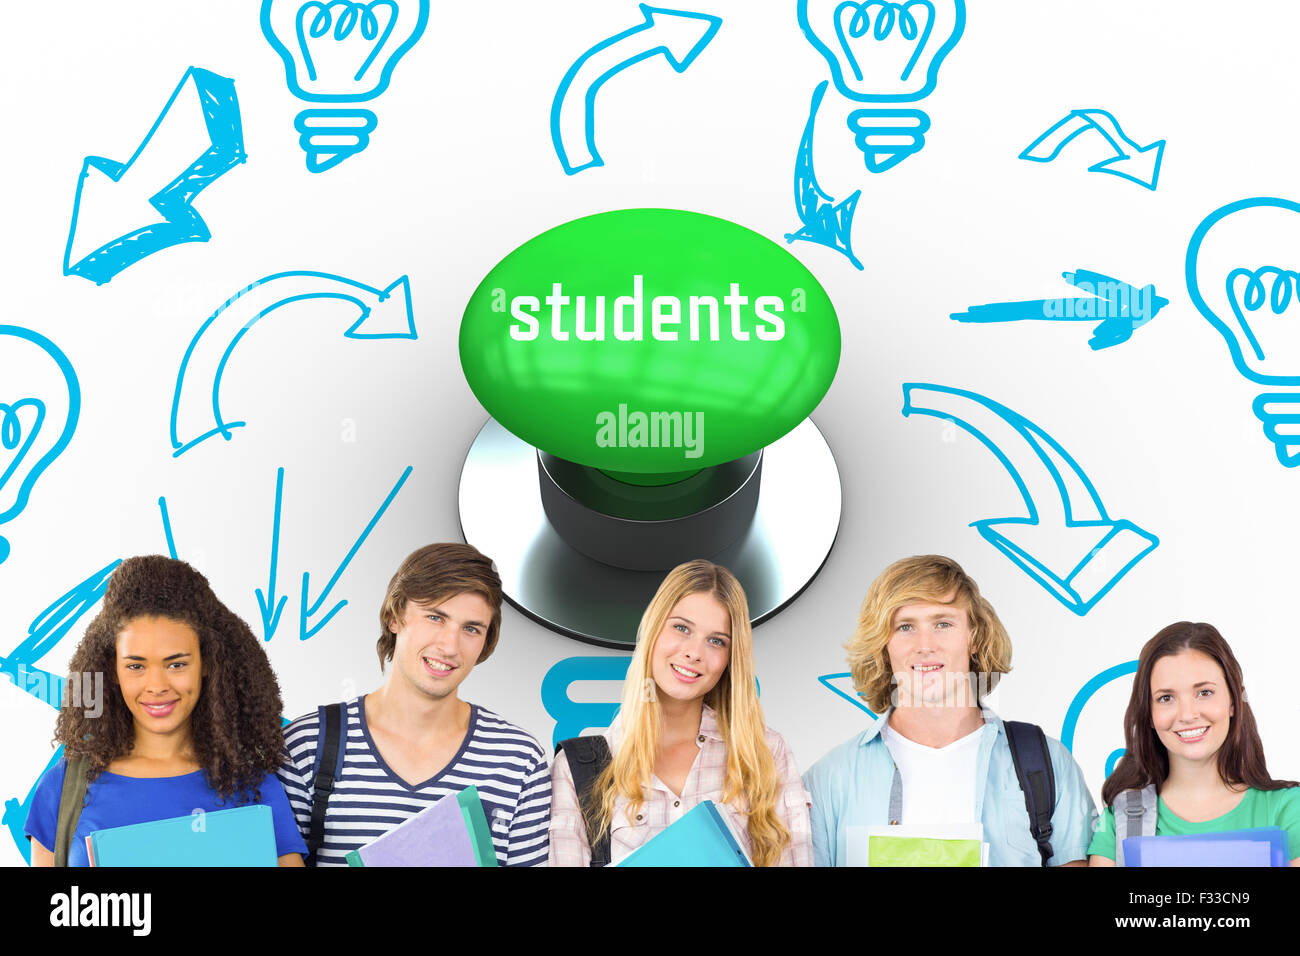 Students against digitally generated green push button Stock Photo